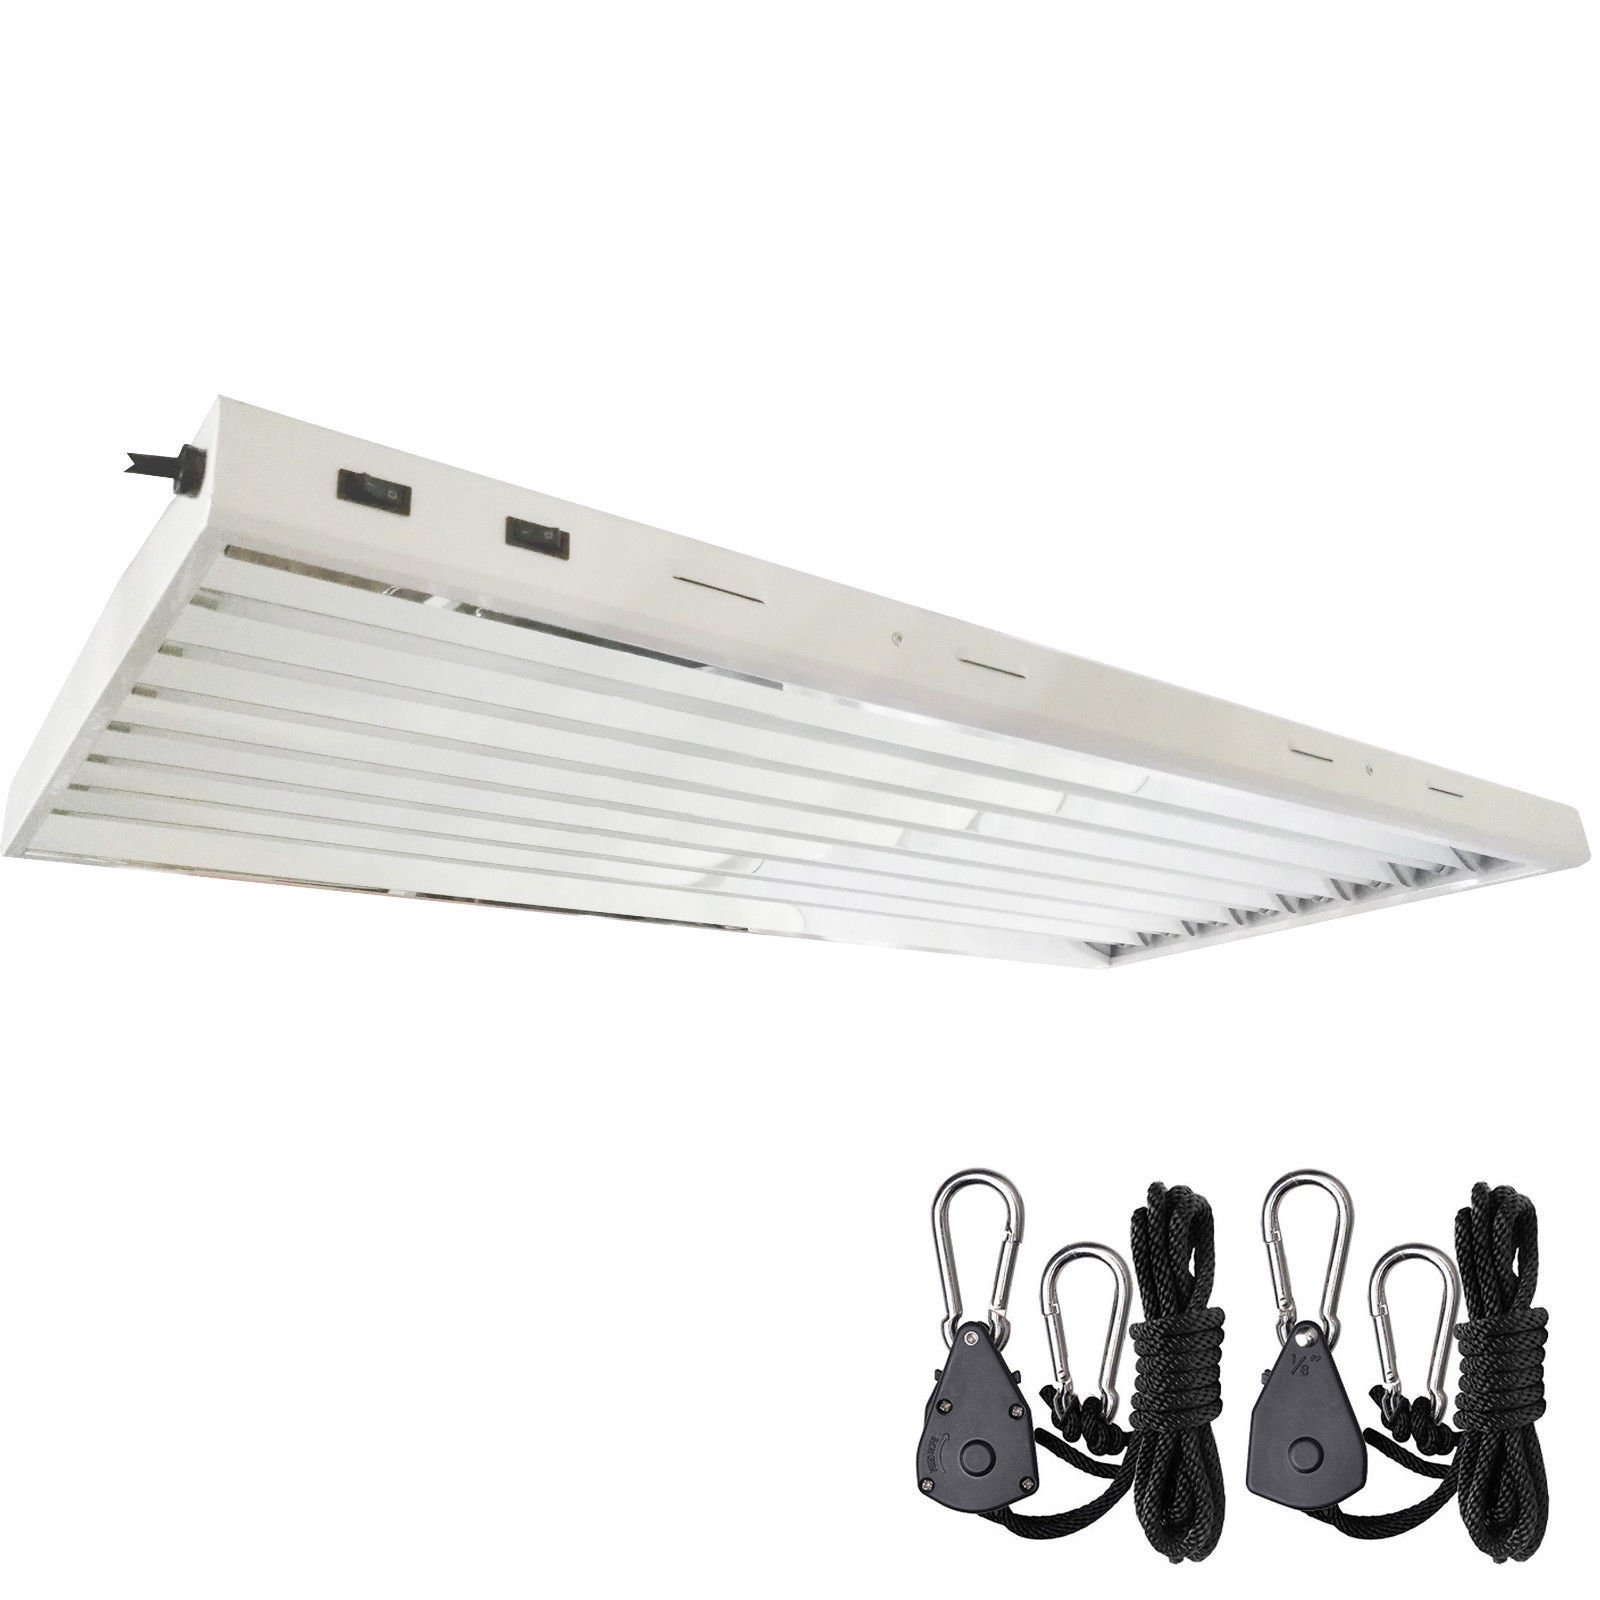 DLS T5 HO Fluorescent Lamp Grow Lights Fixtures 4 ft 8 Lamps Included (4FT 8 LAMPS)